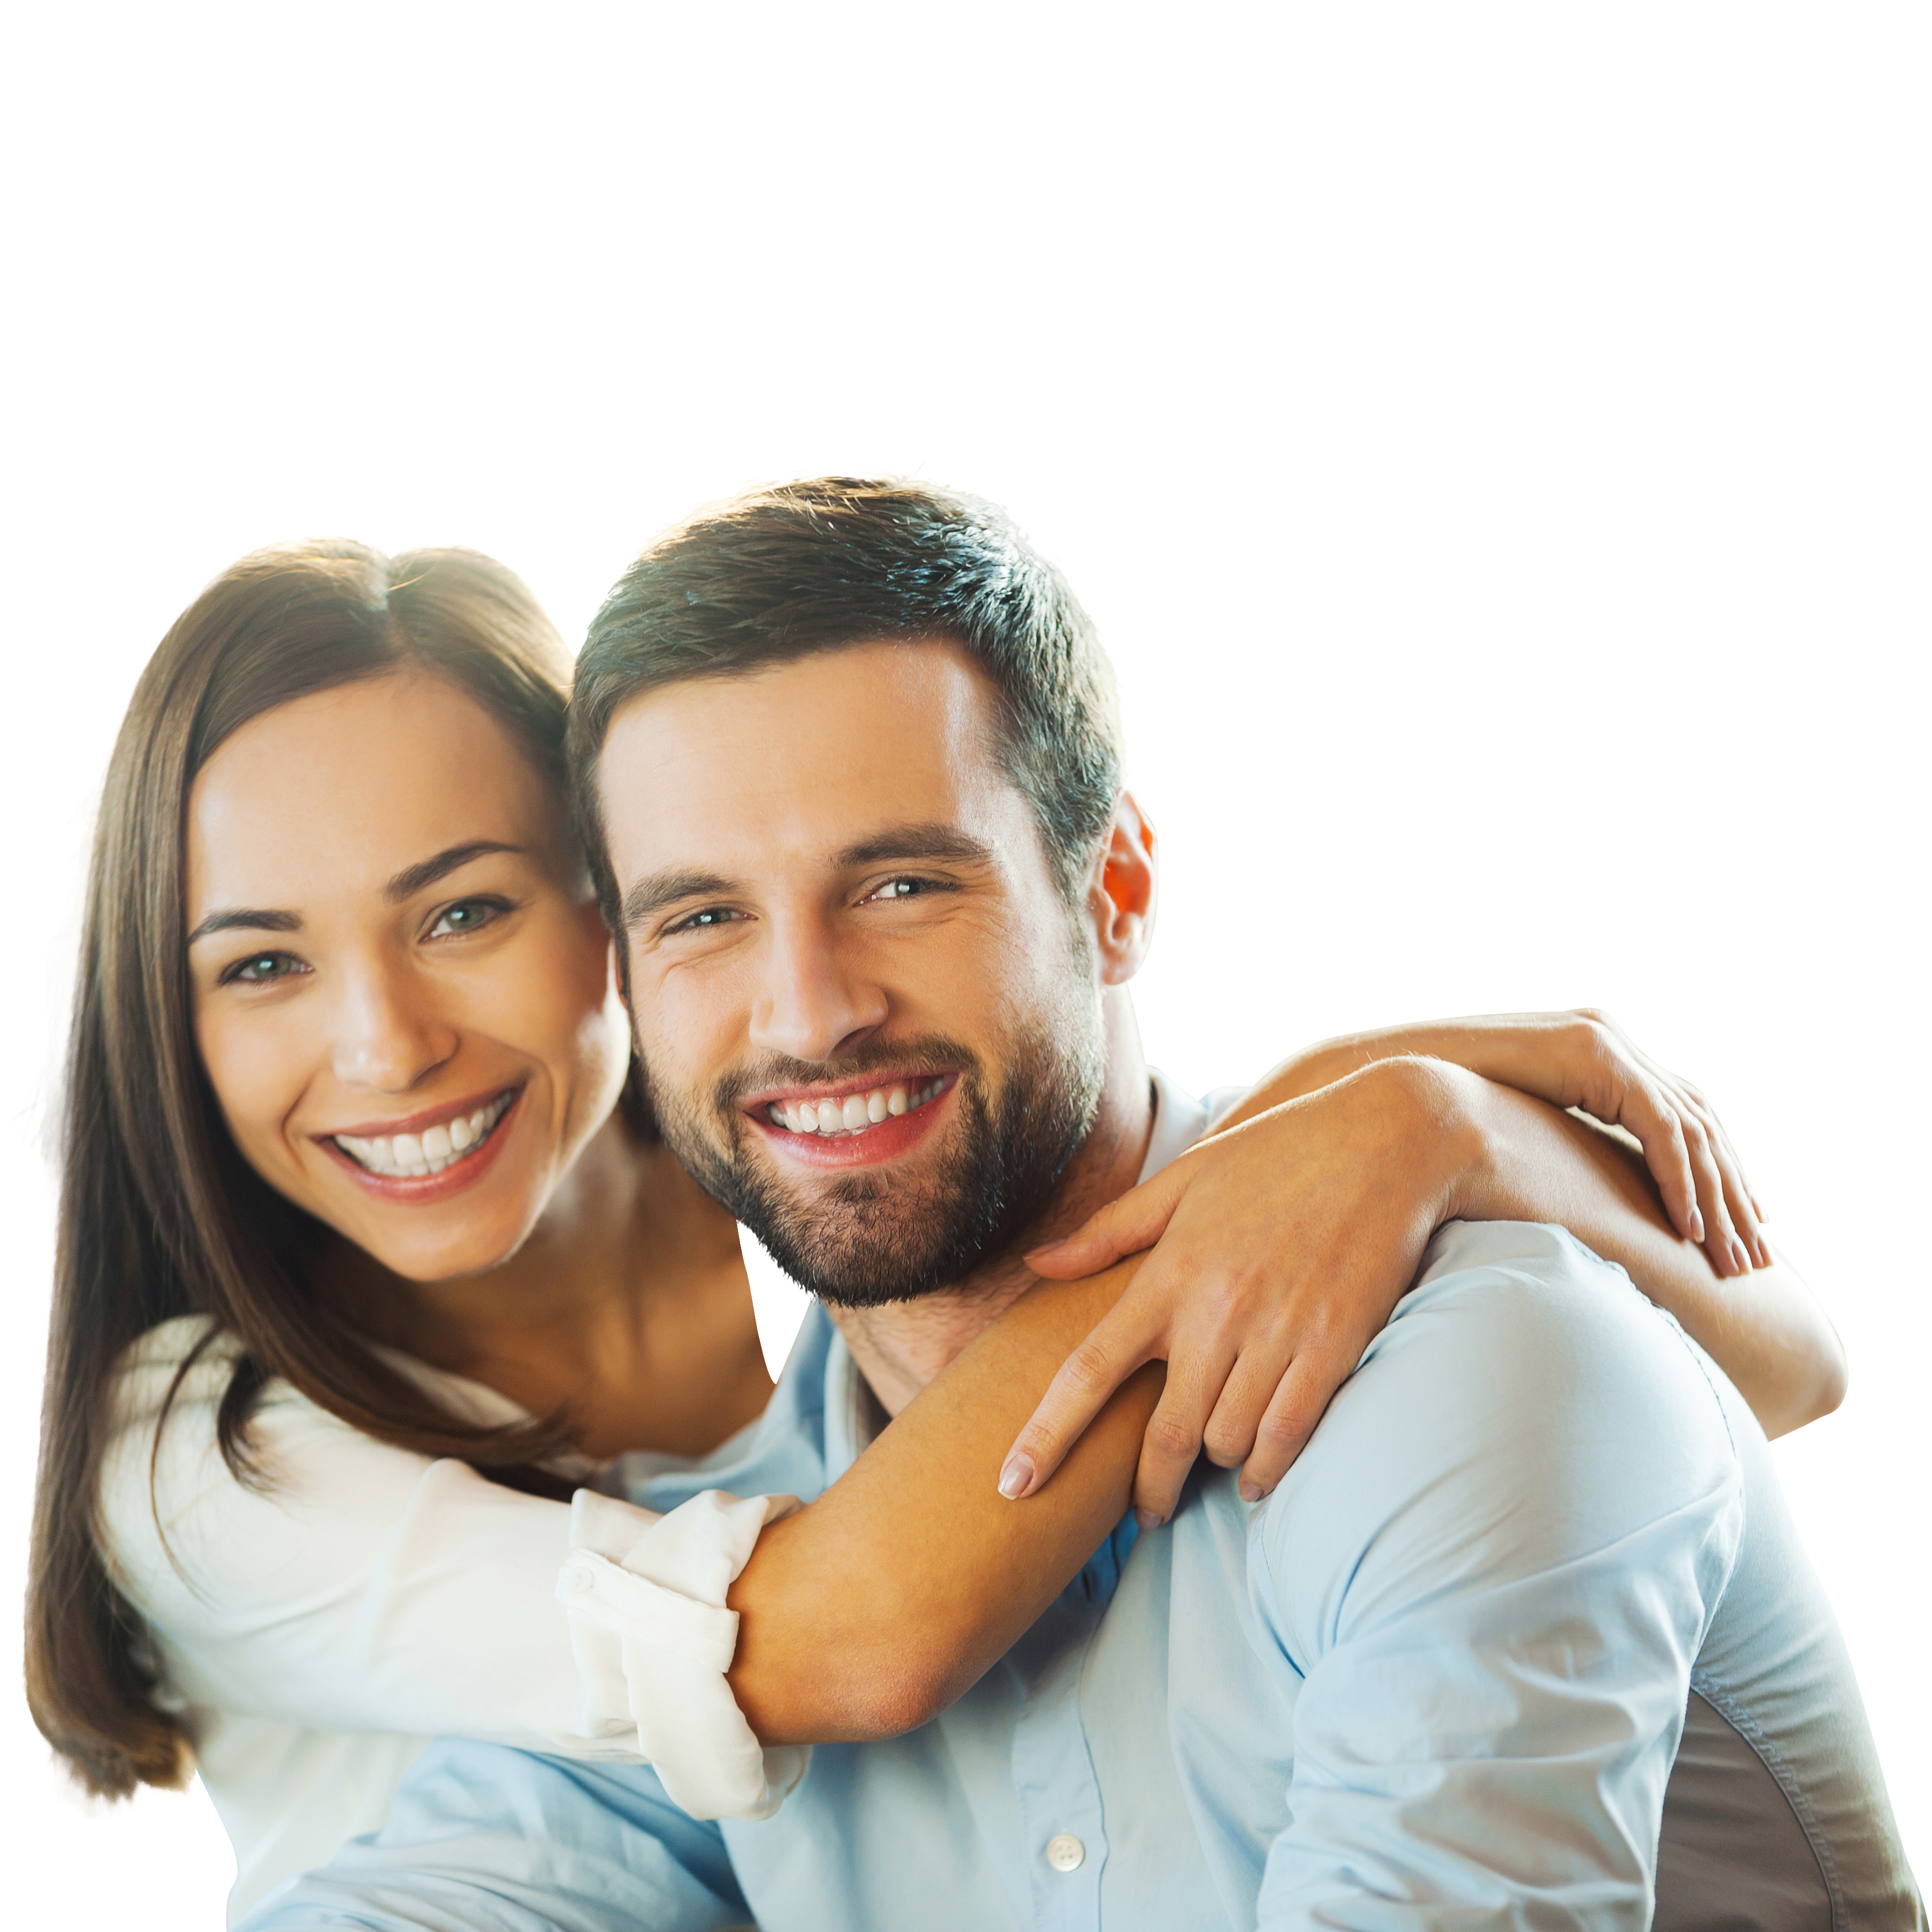 title company baltimore settlement services for buyers and sellers